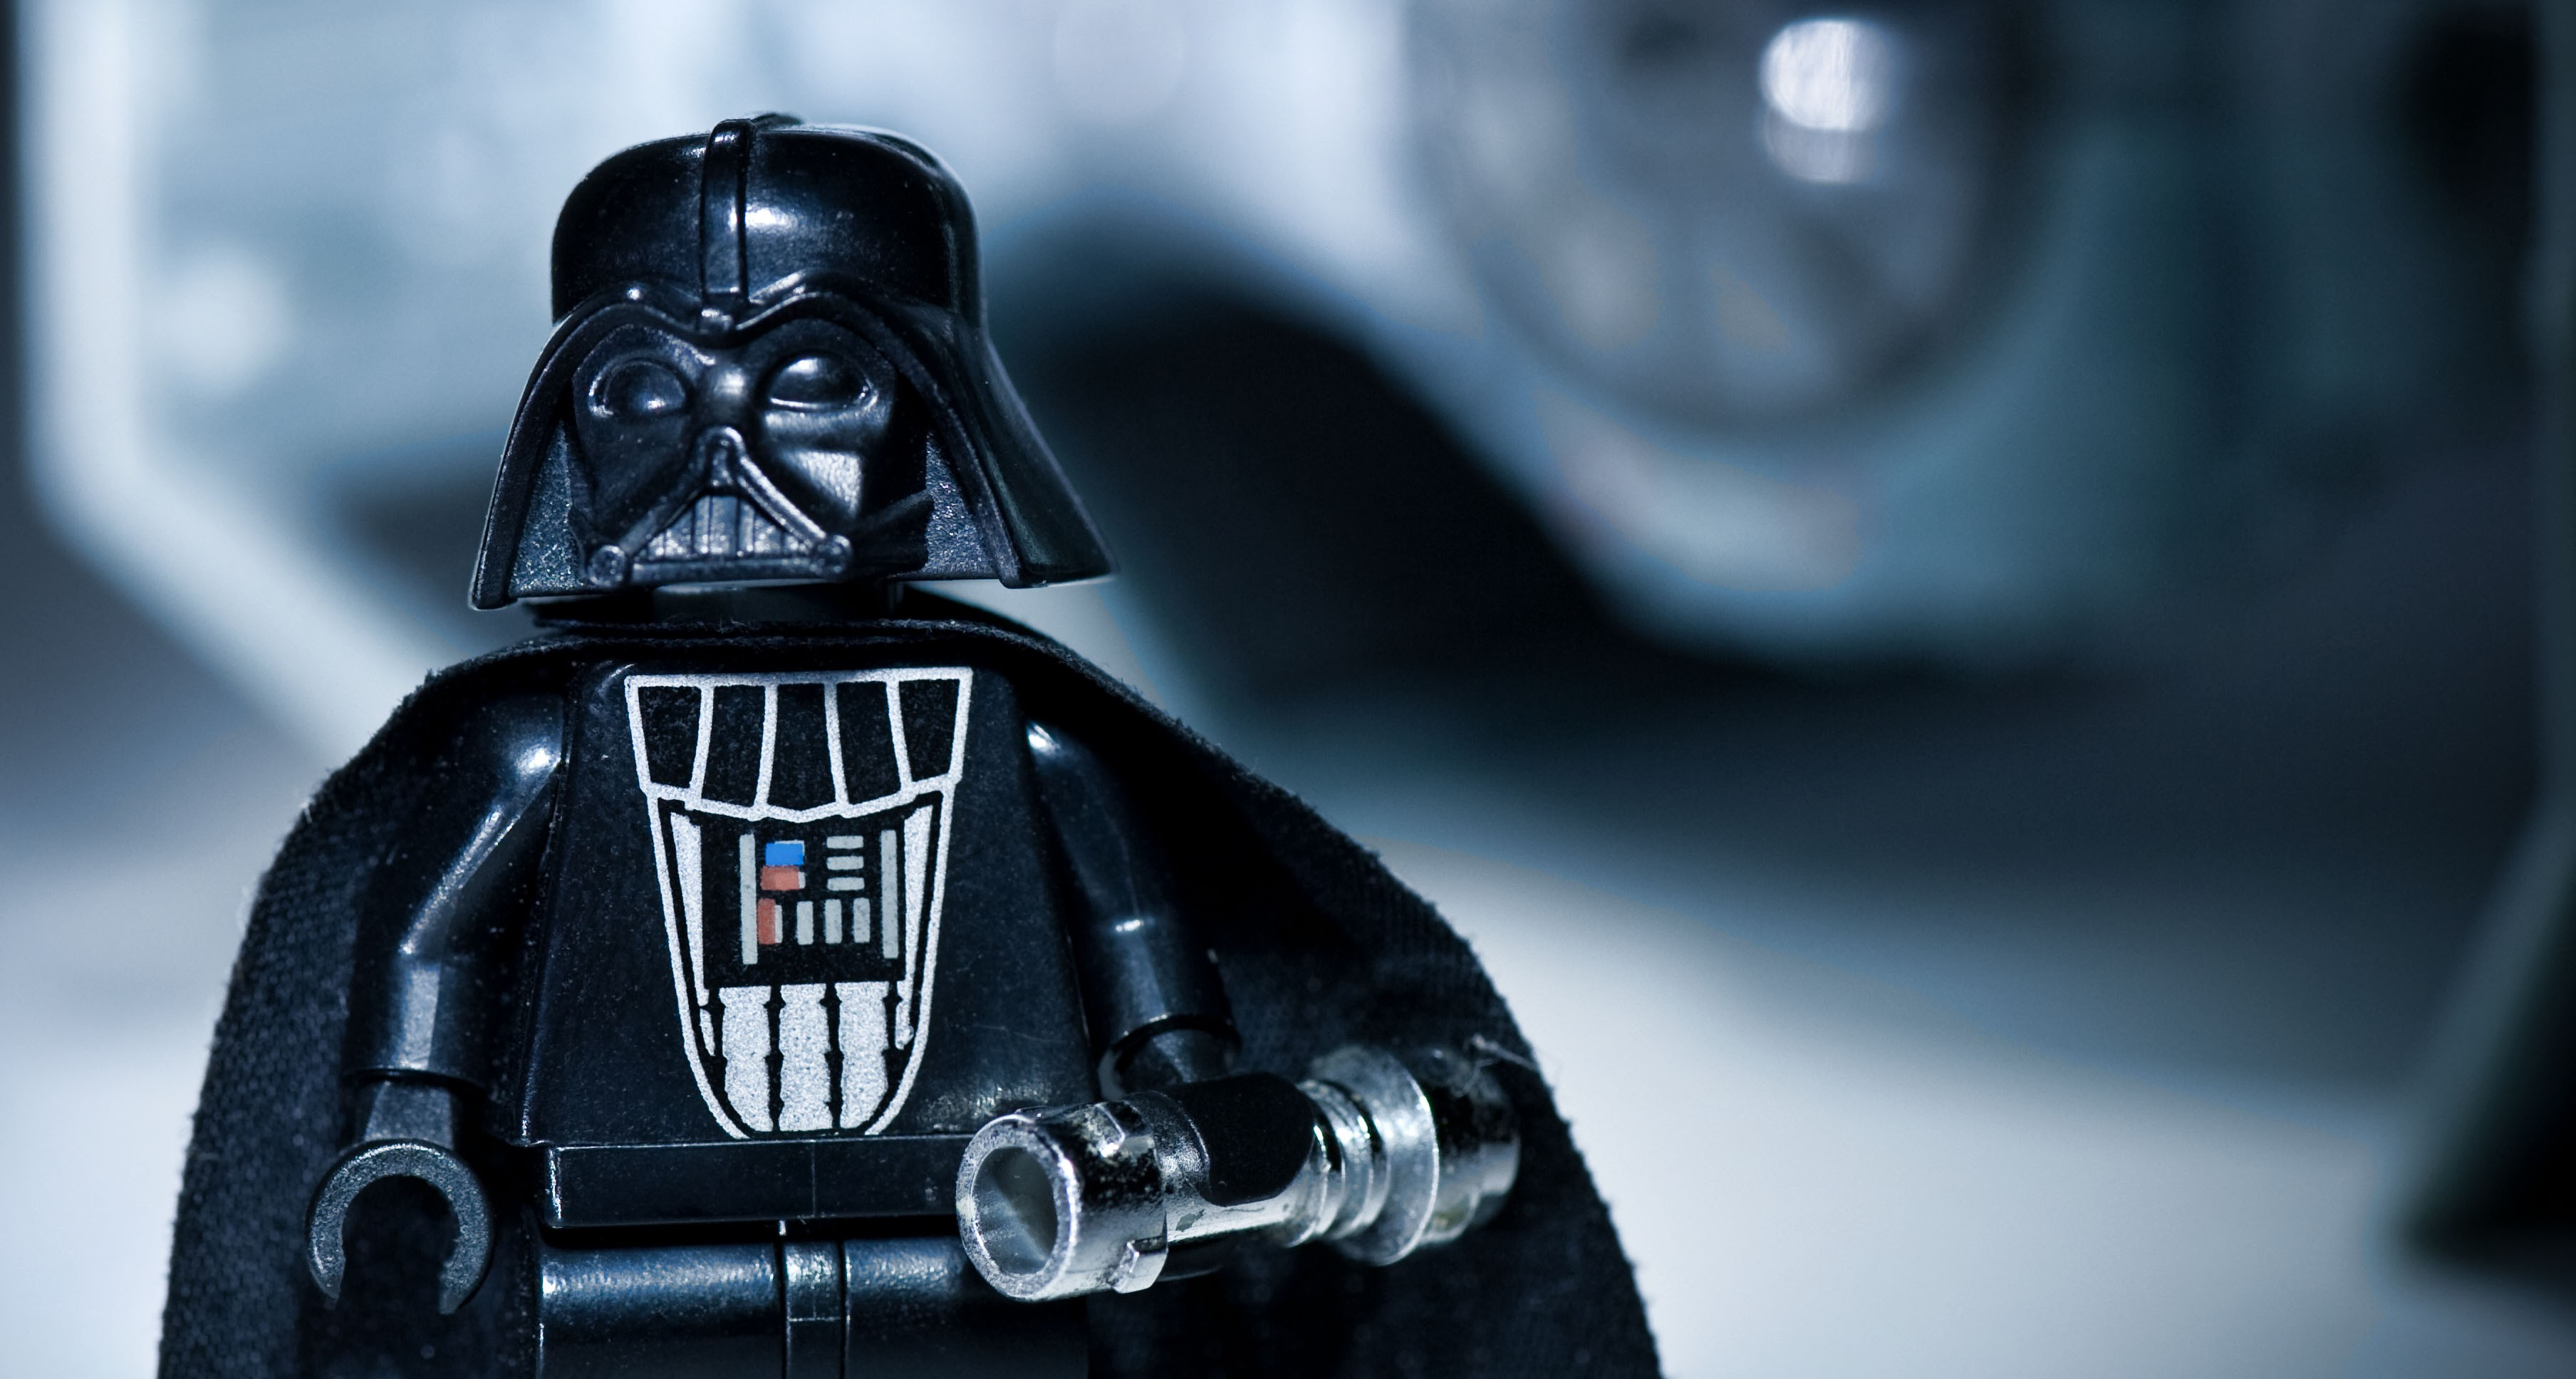 lego-darth-vader-wallpaper-for-android